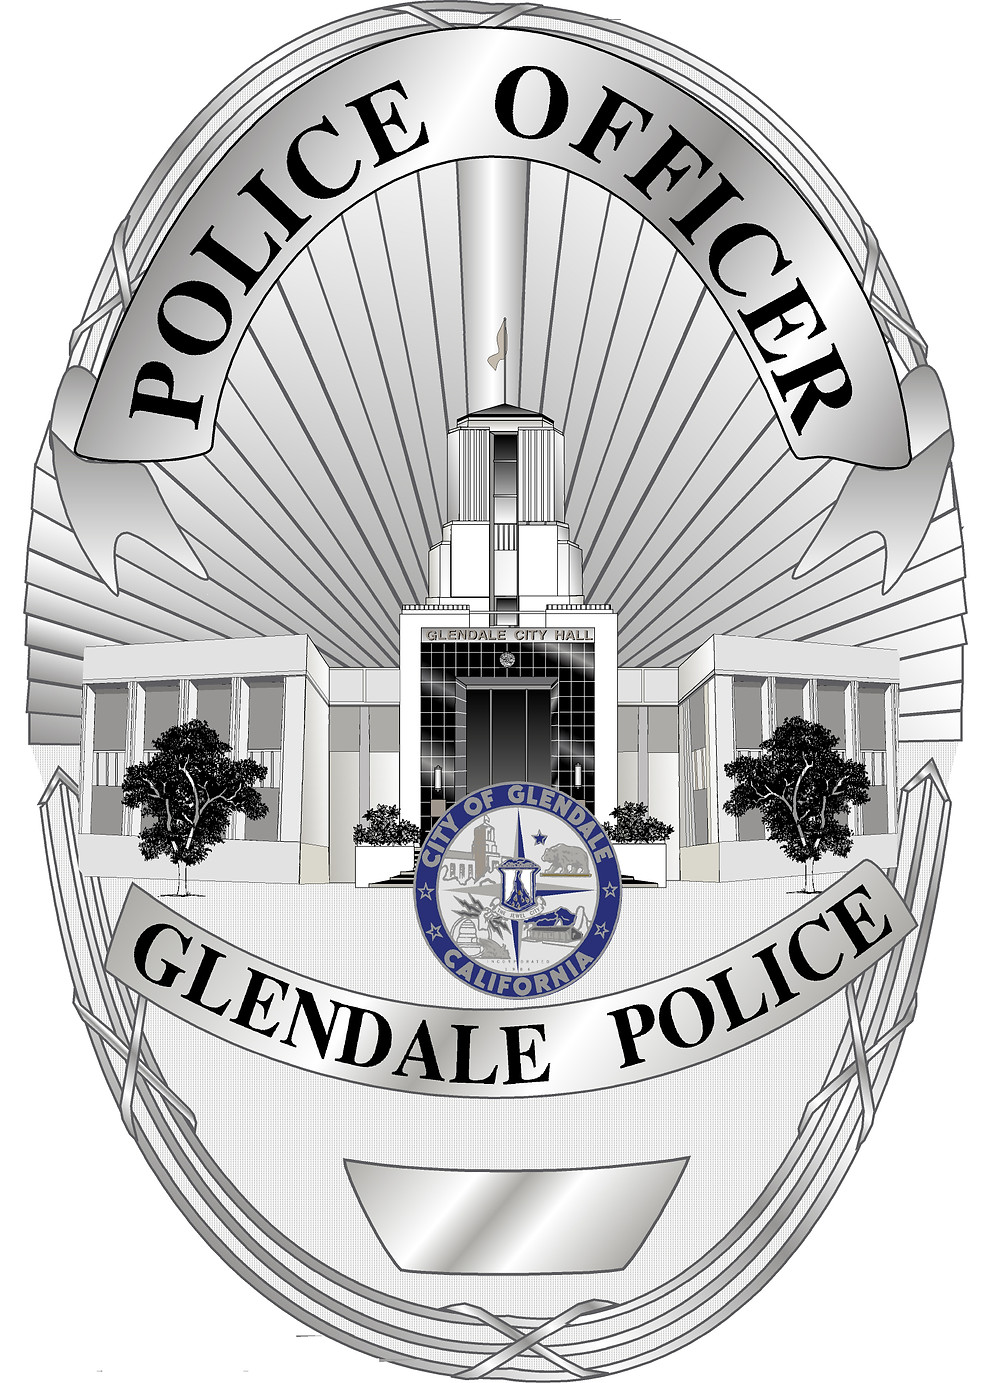 City of Glendale Police